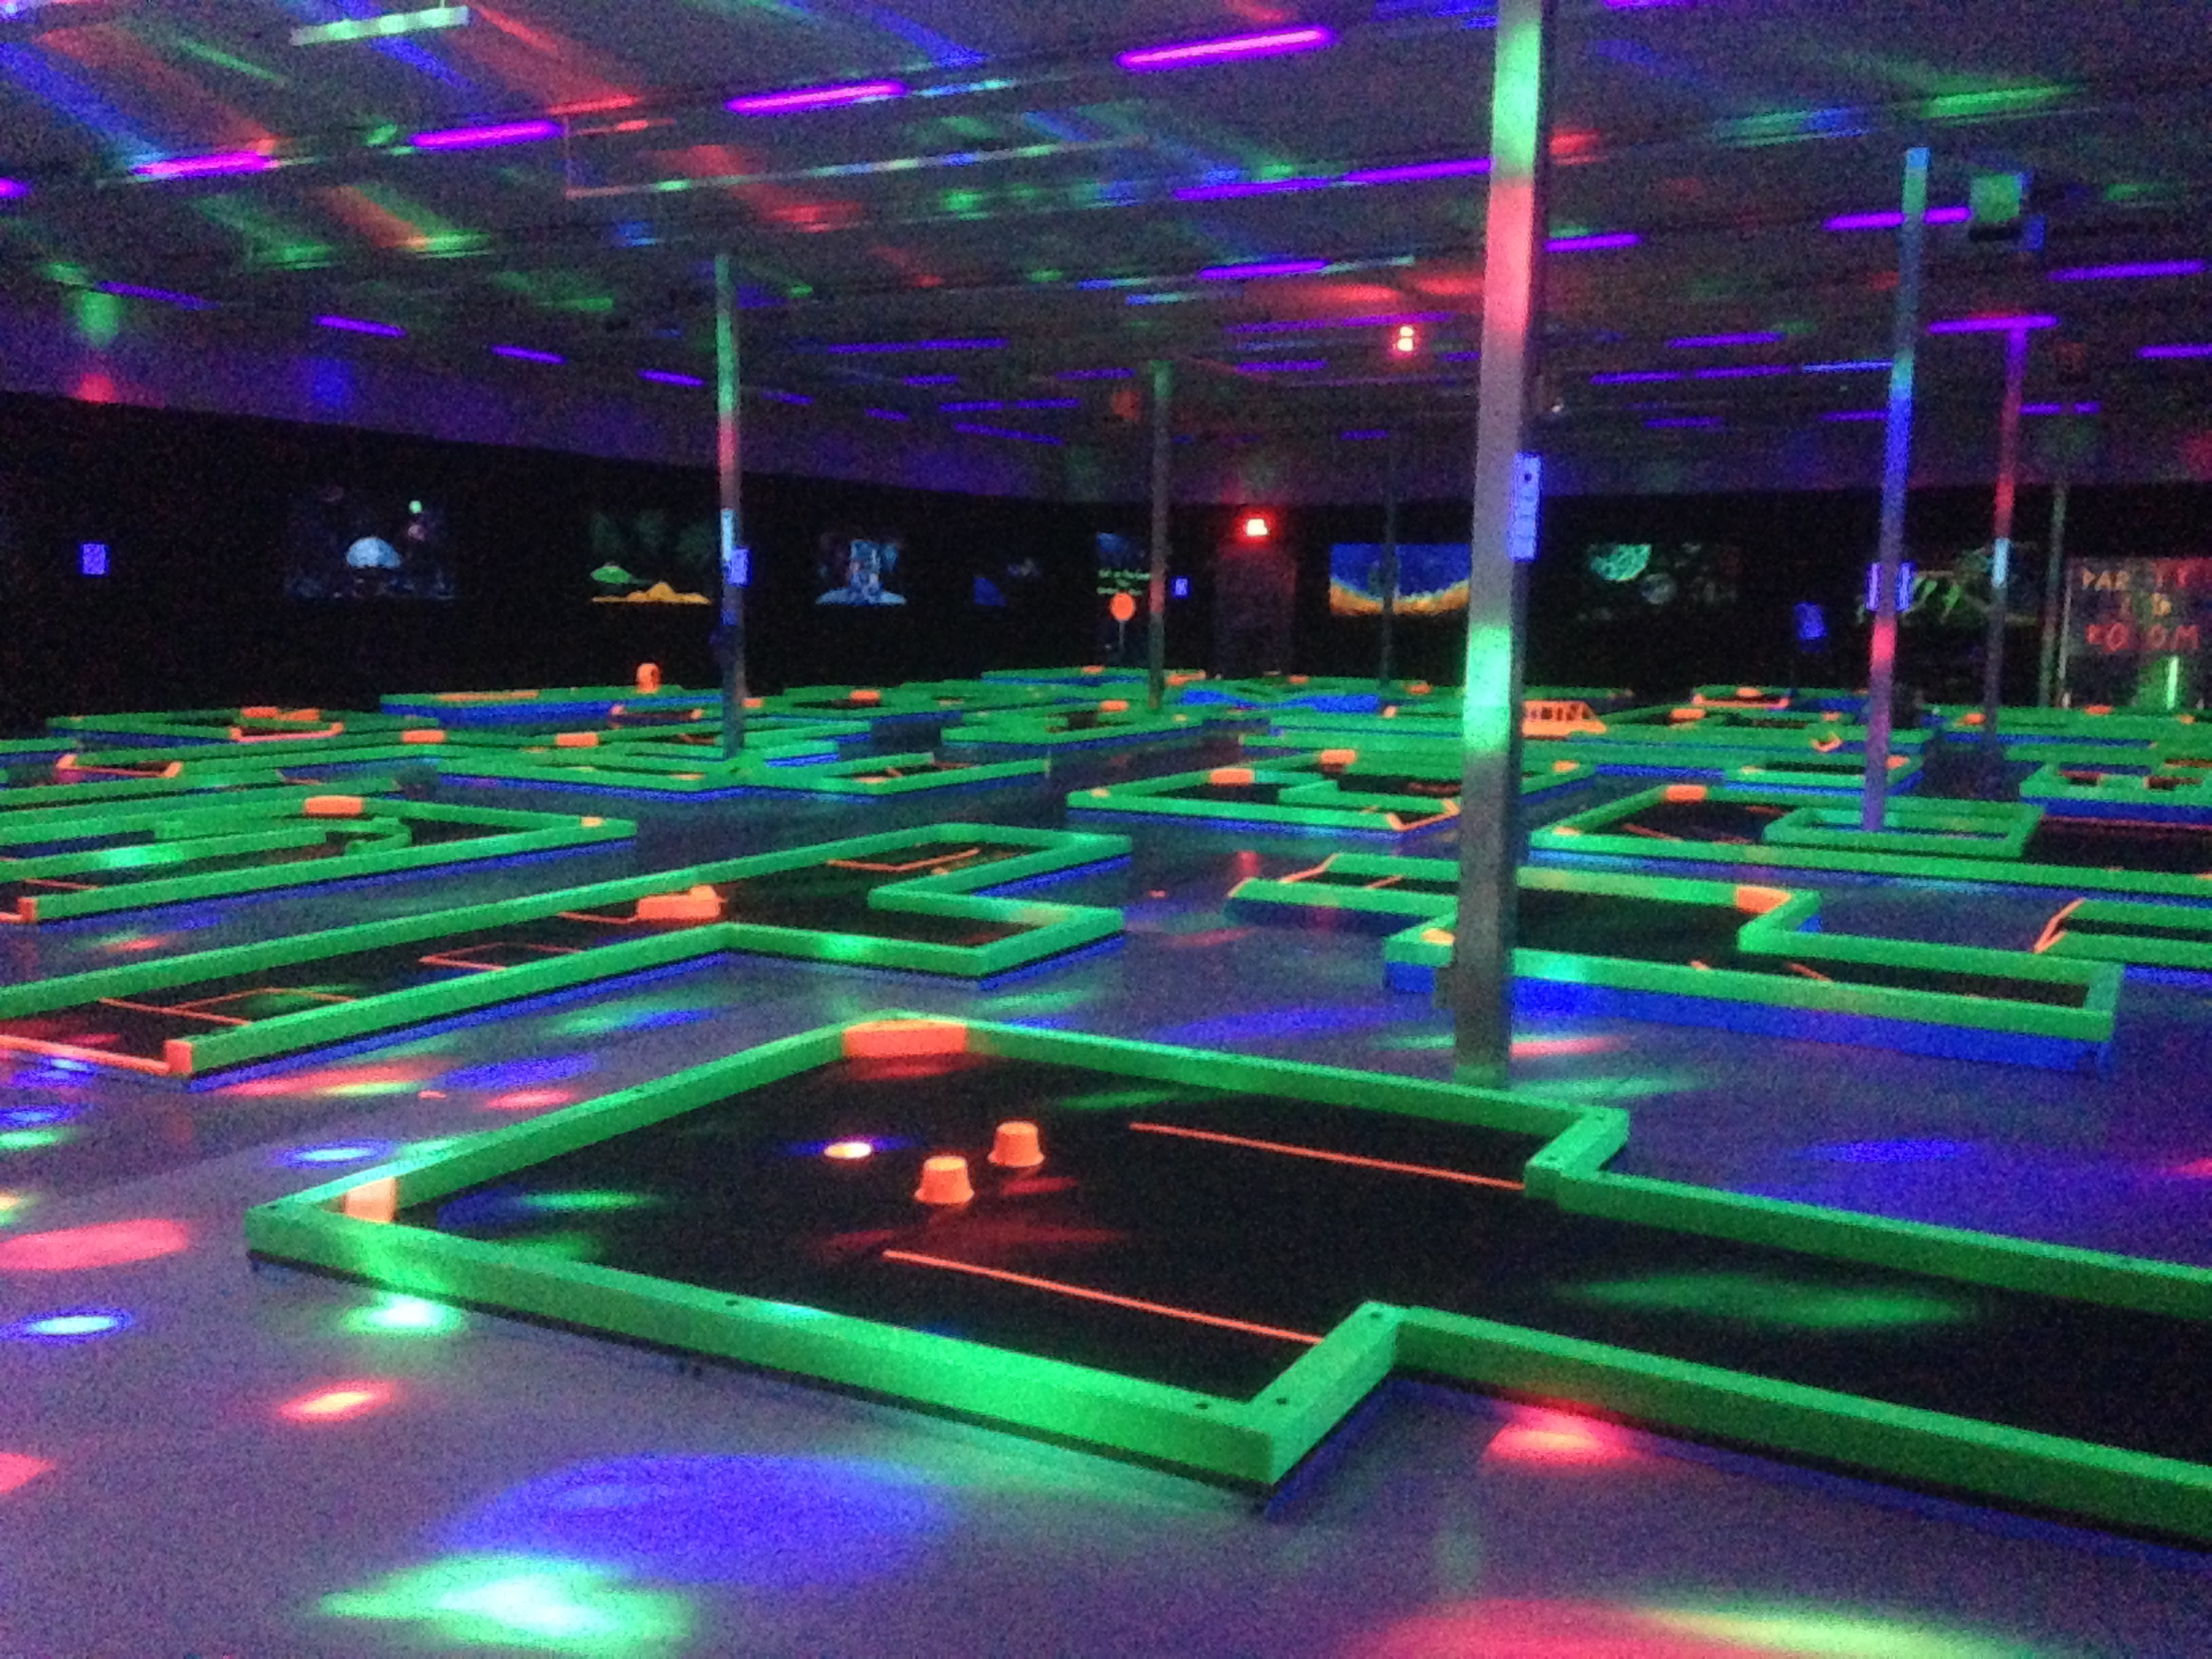 Glow in the dark mini-golf opens in Ahwatukee | 12news.com